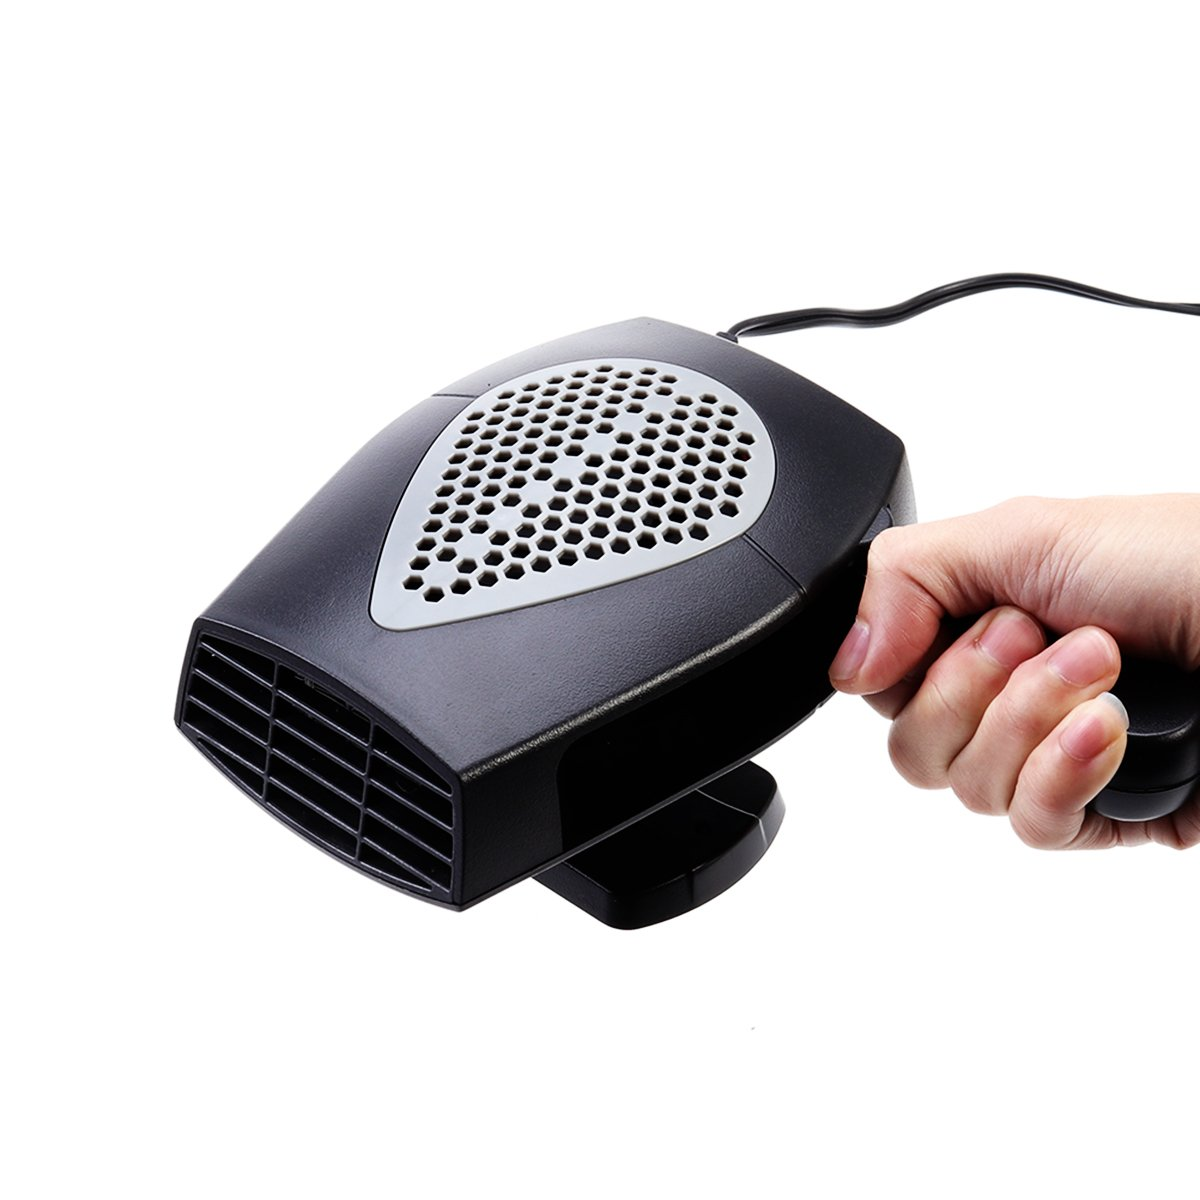 Vosarea Car Heater